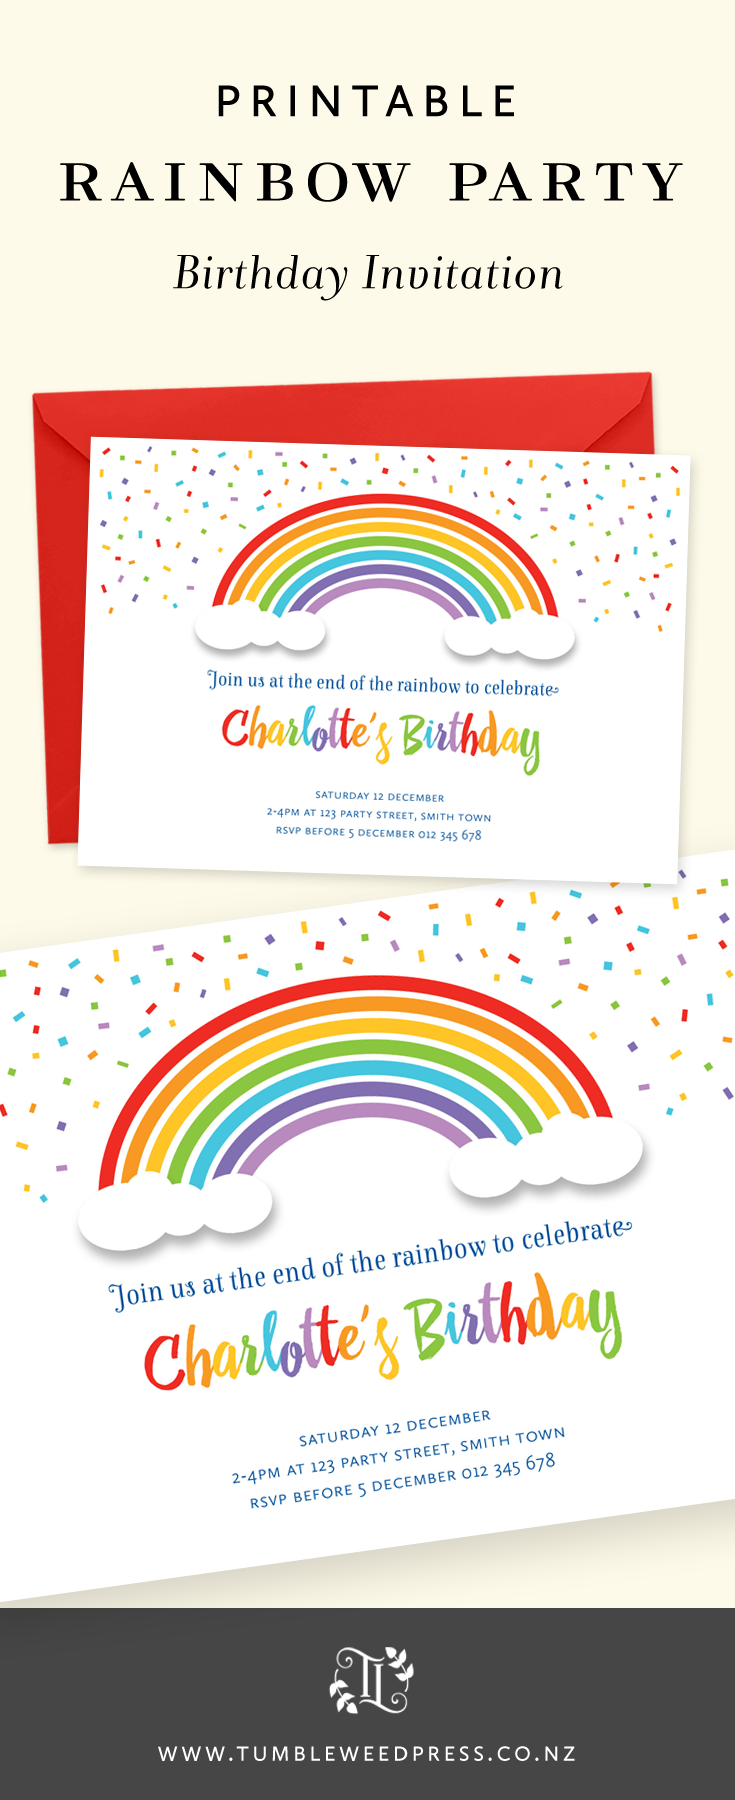 Rainbow birthday invitation theme party ideas pinterest i love a rainbow or unicorn party theme so colorful httpsshoptumbleweedpressproductsrainbow birthday party printable invitation stopboris Choice Image